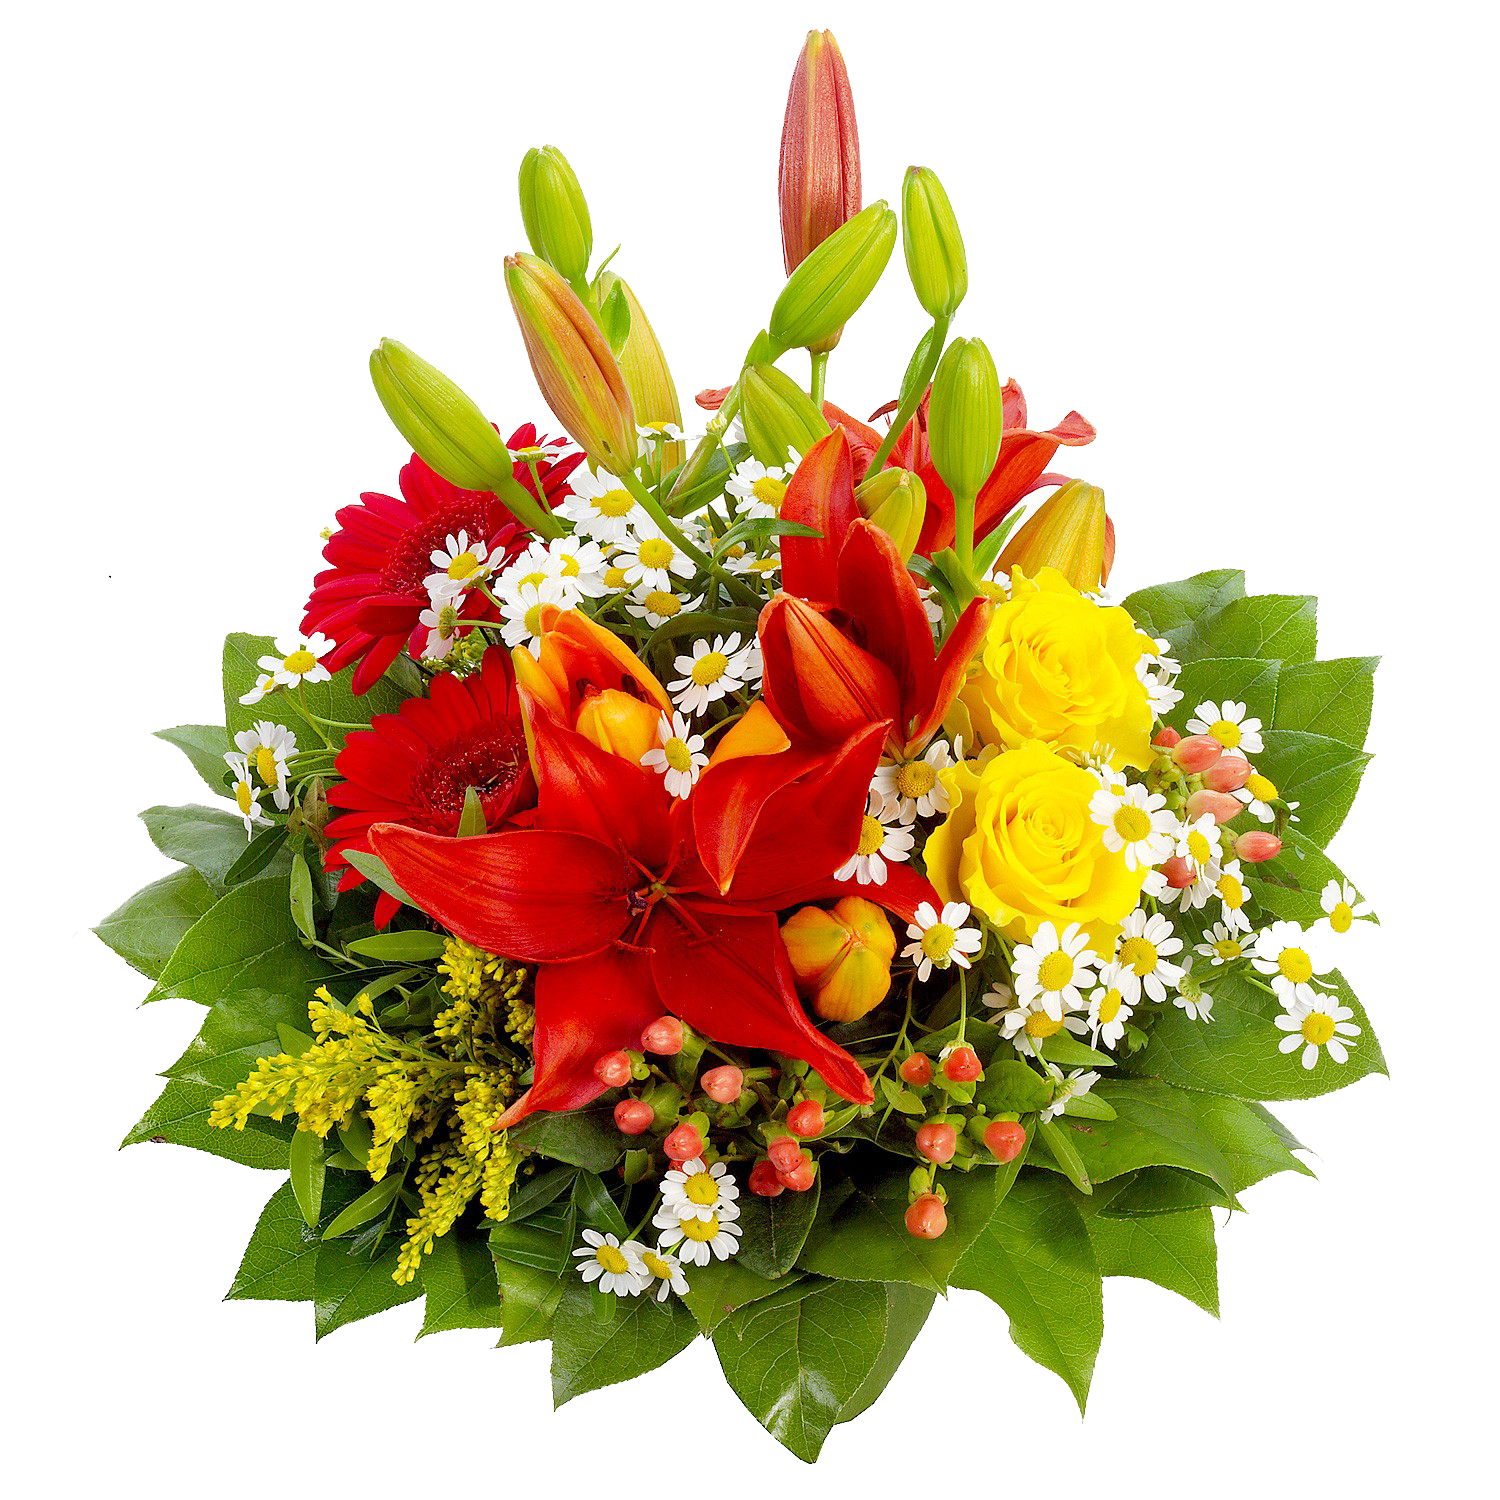 Of flowers images free. Flower bouquet png